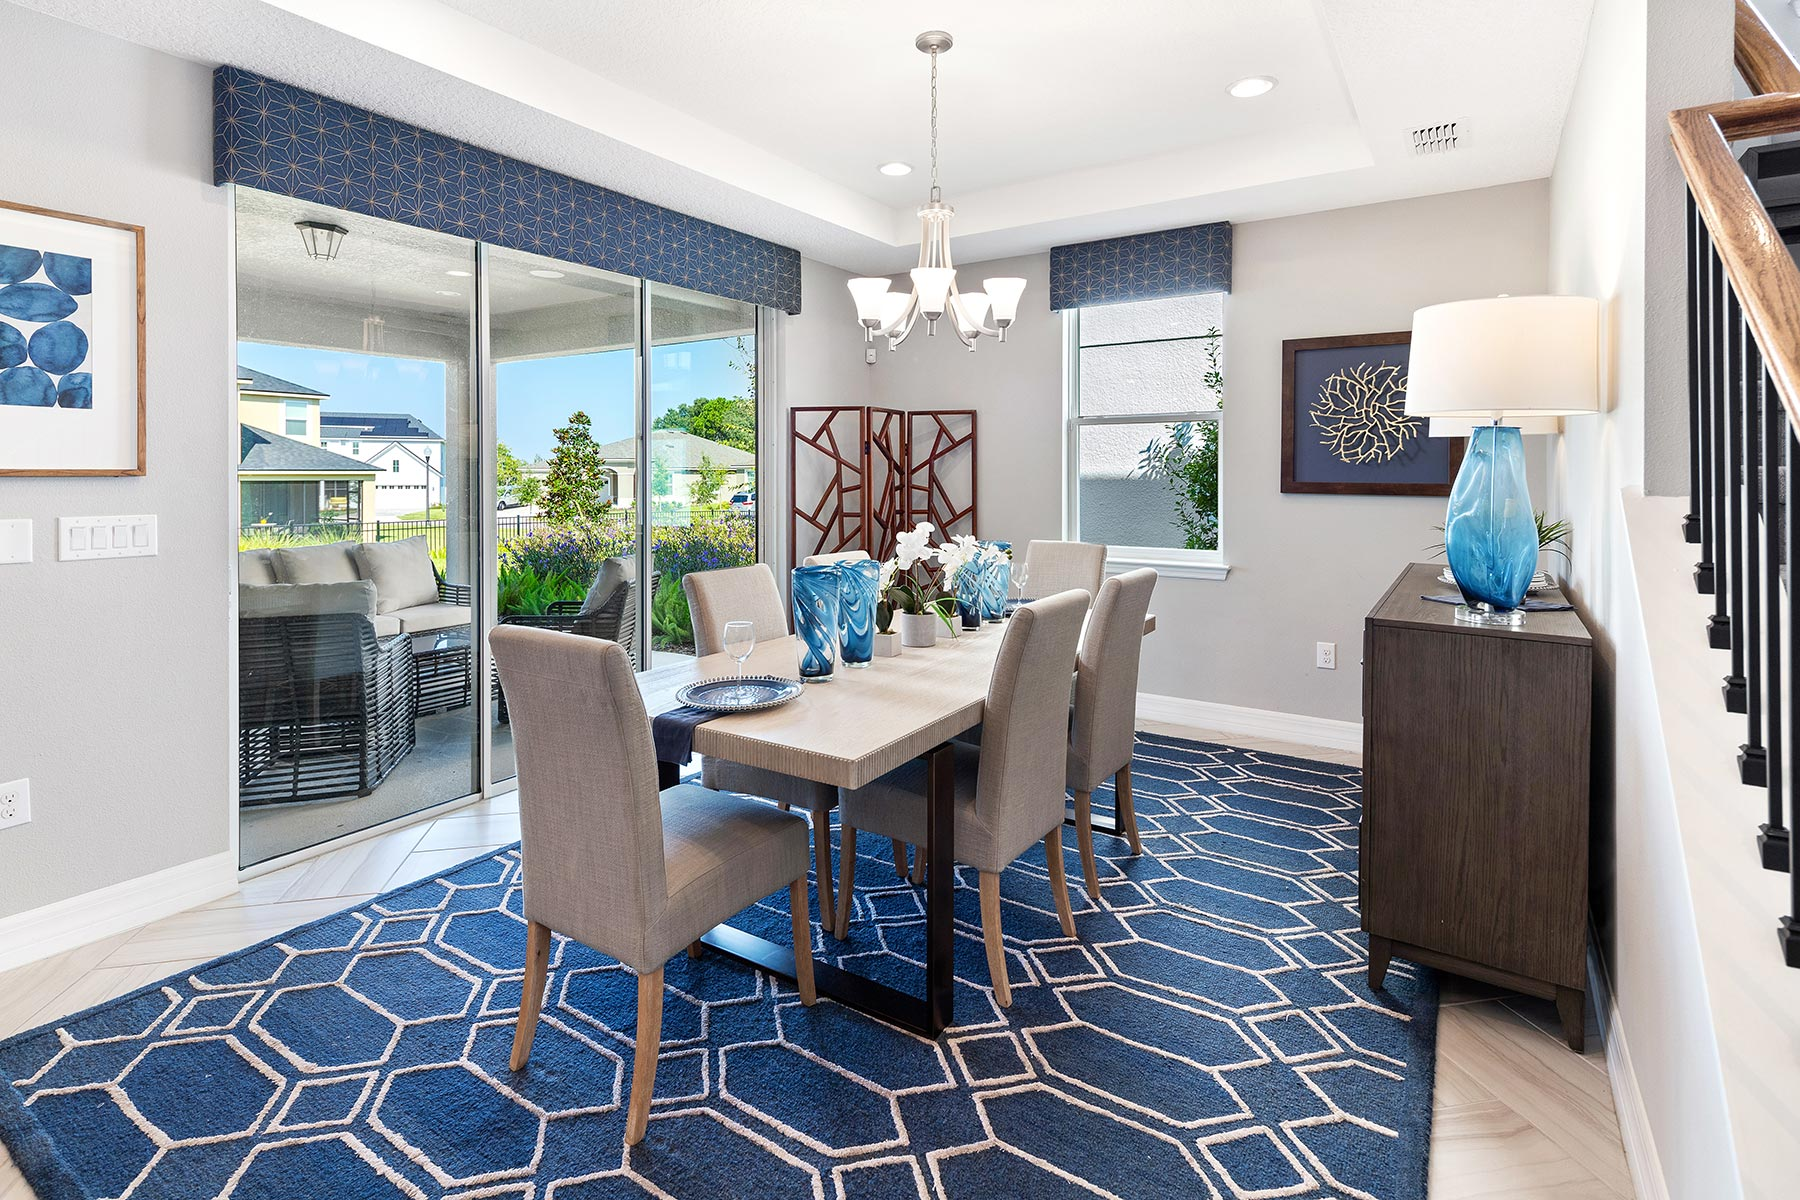 Kensington Plan Dining at Preserve at Crown Point in Ocoee Florida by Mattamy Homes